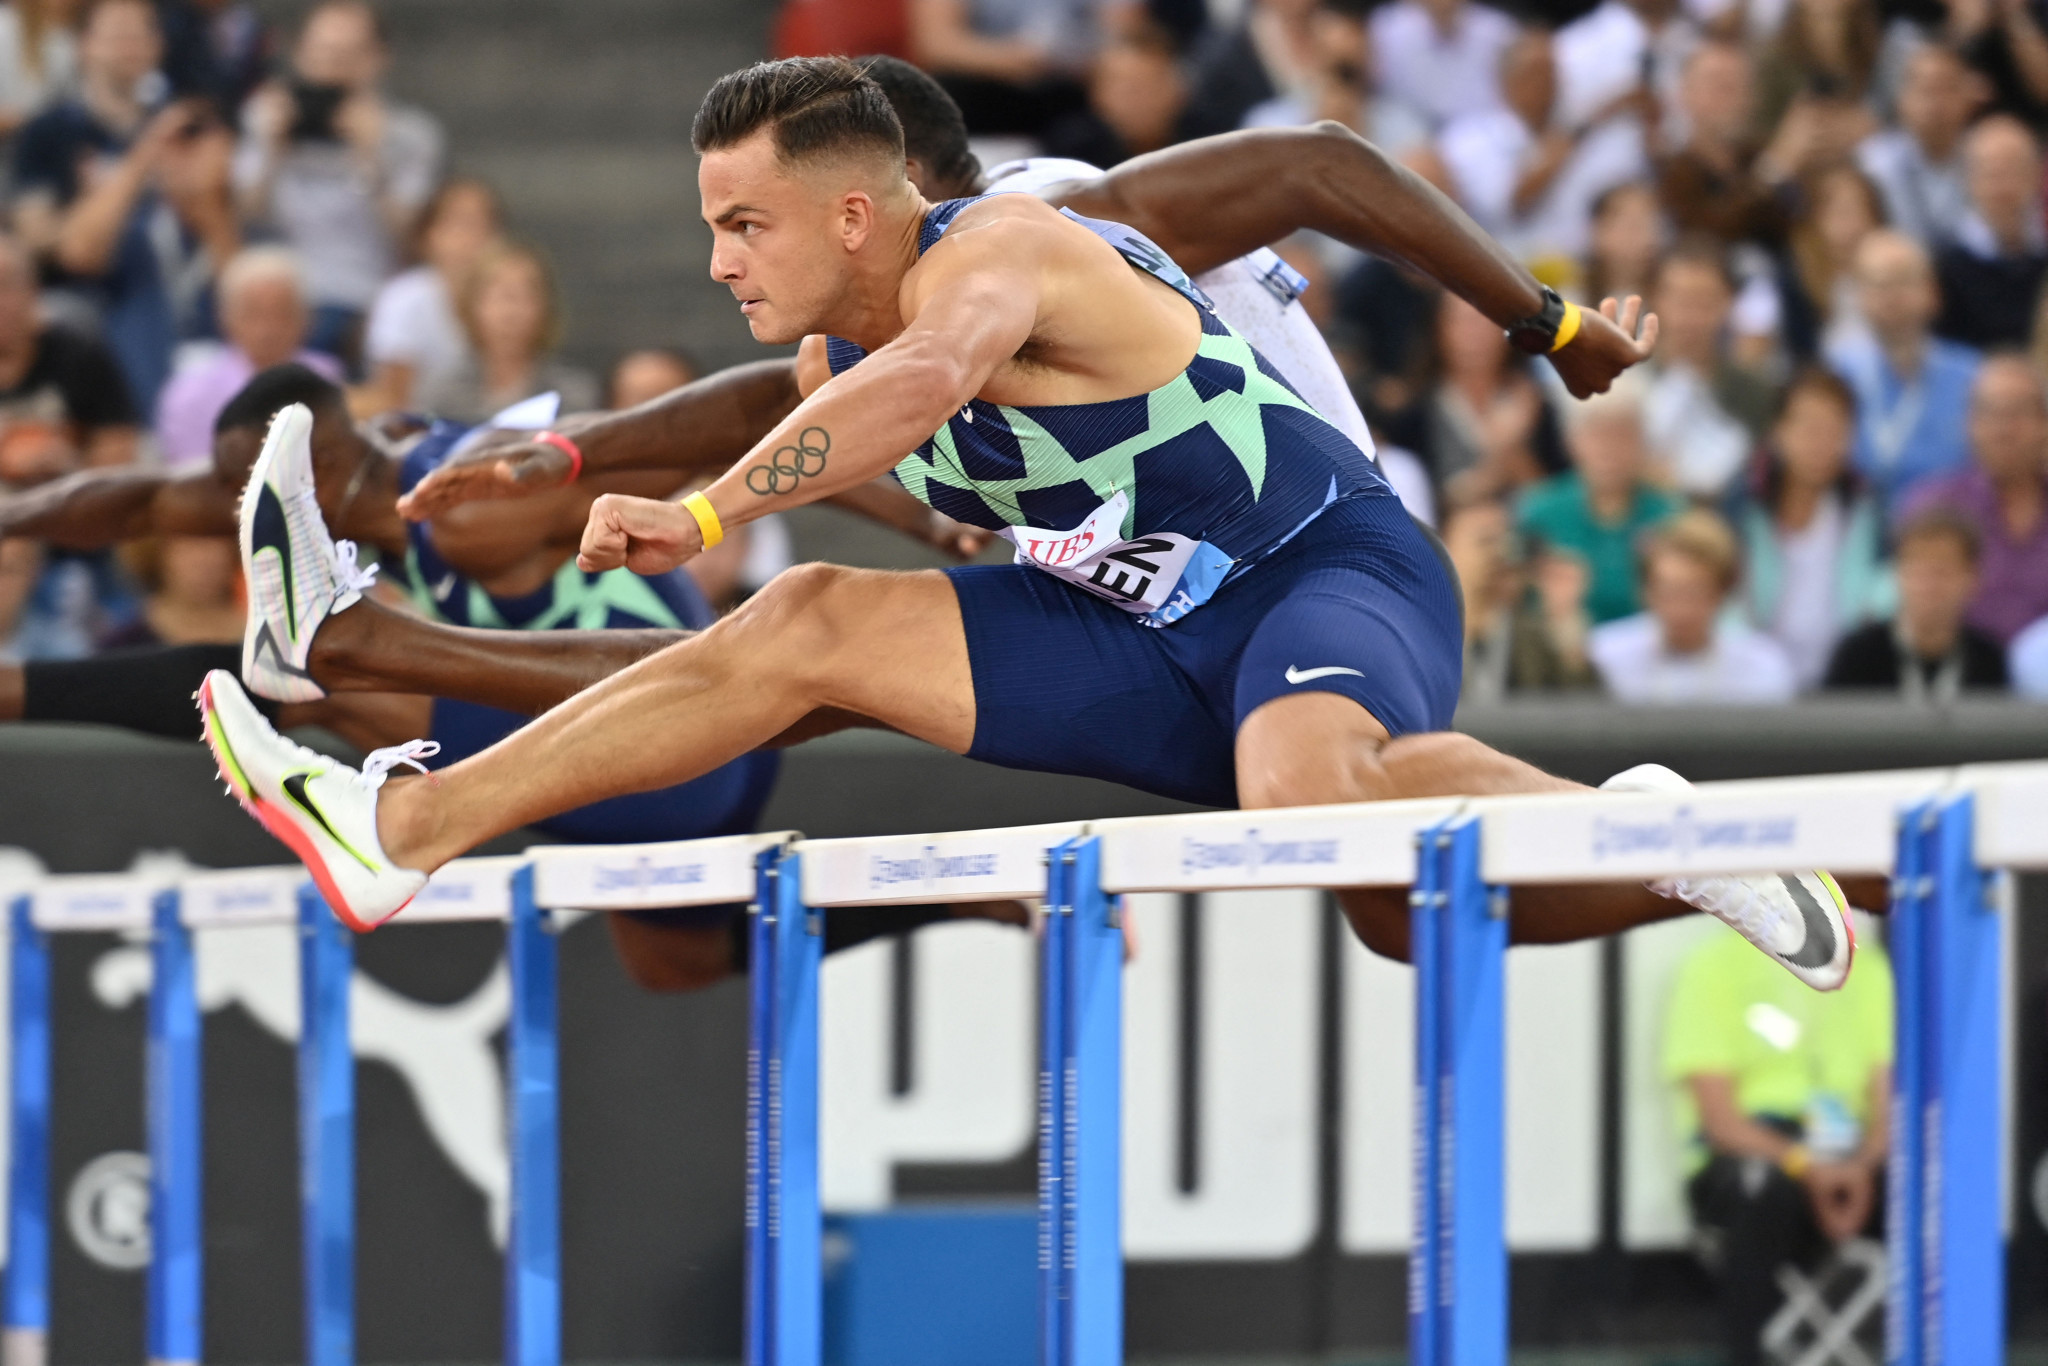 Devon Allen won the 110m hurdles by the tightest of margins ©Getty Images